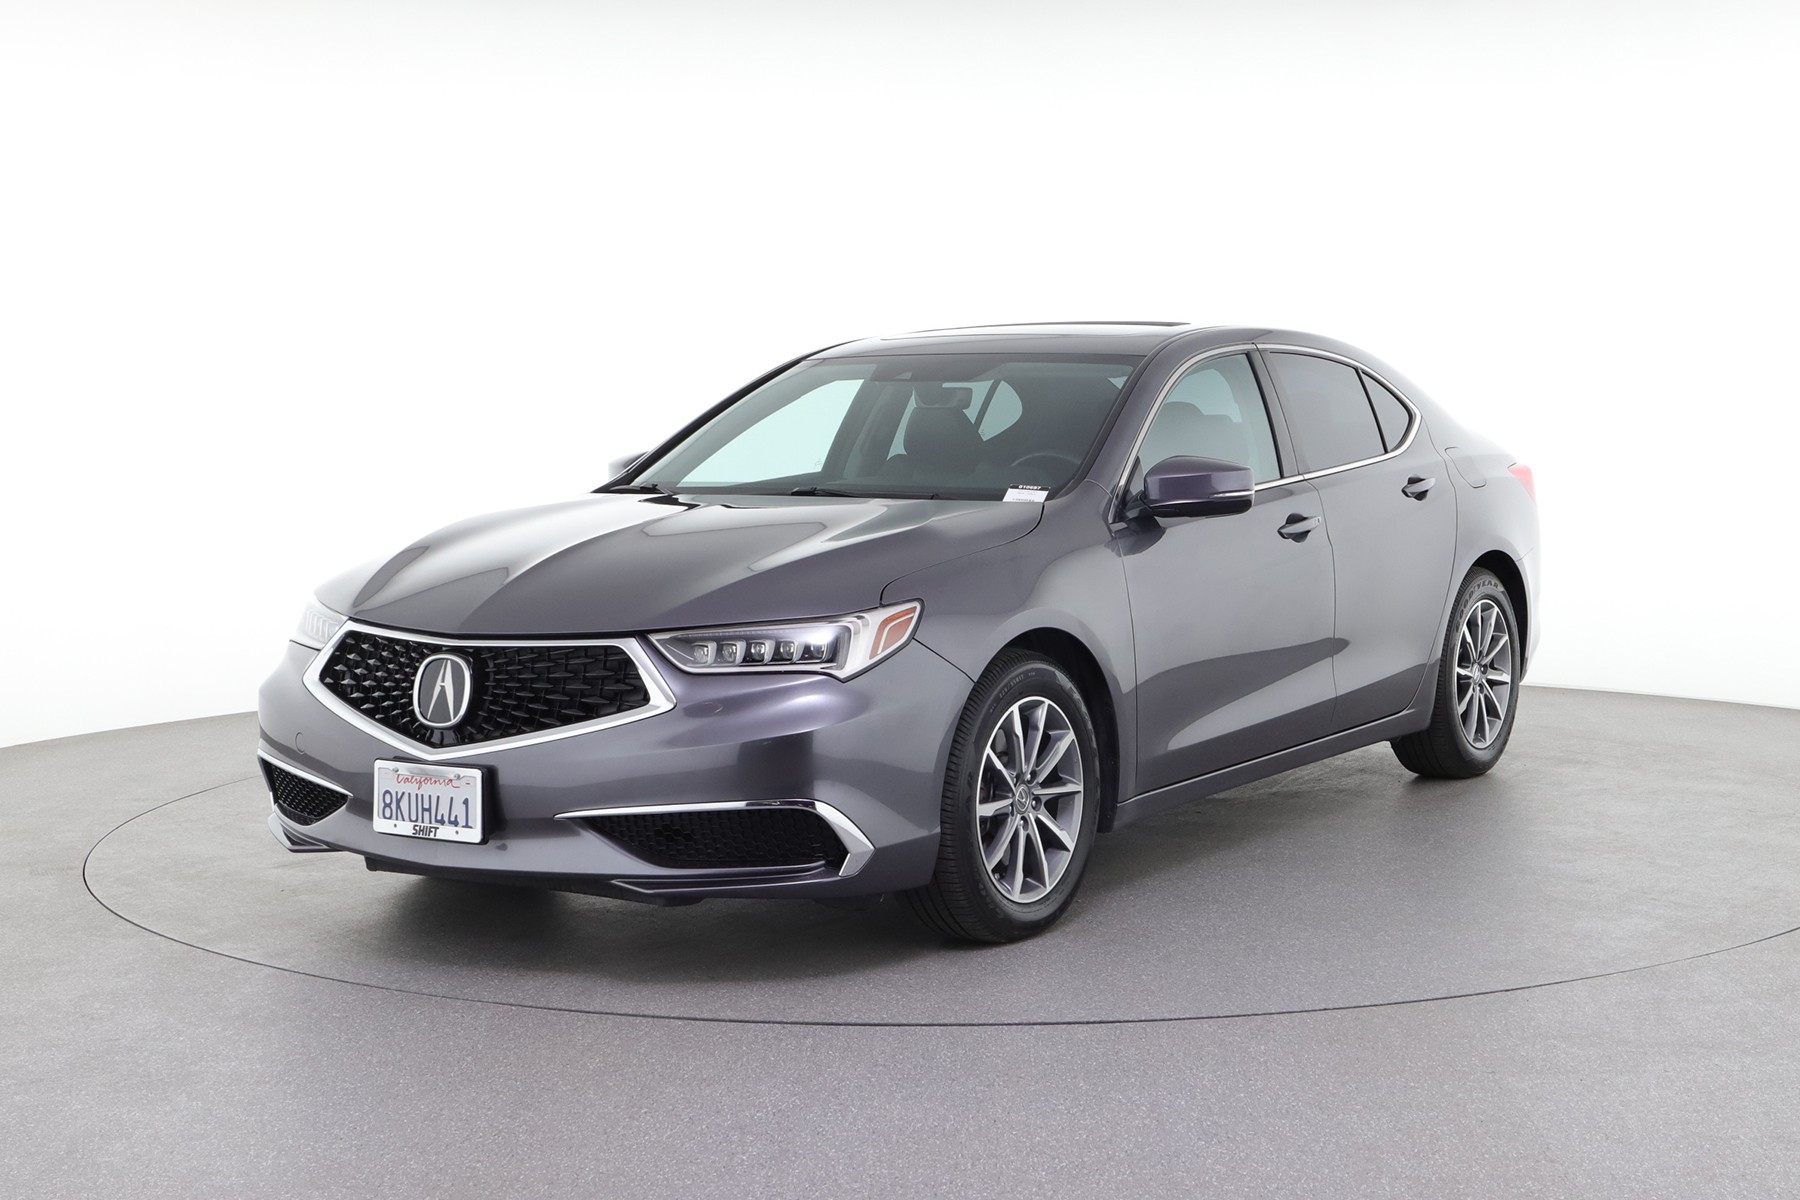 2019 Acura TLX (from $25,950)